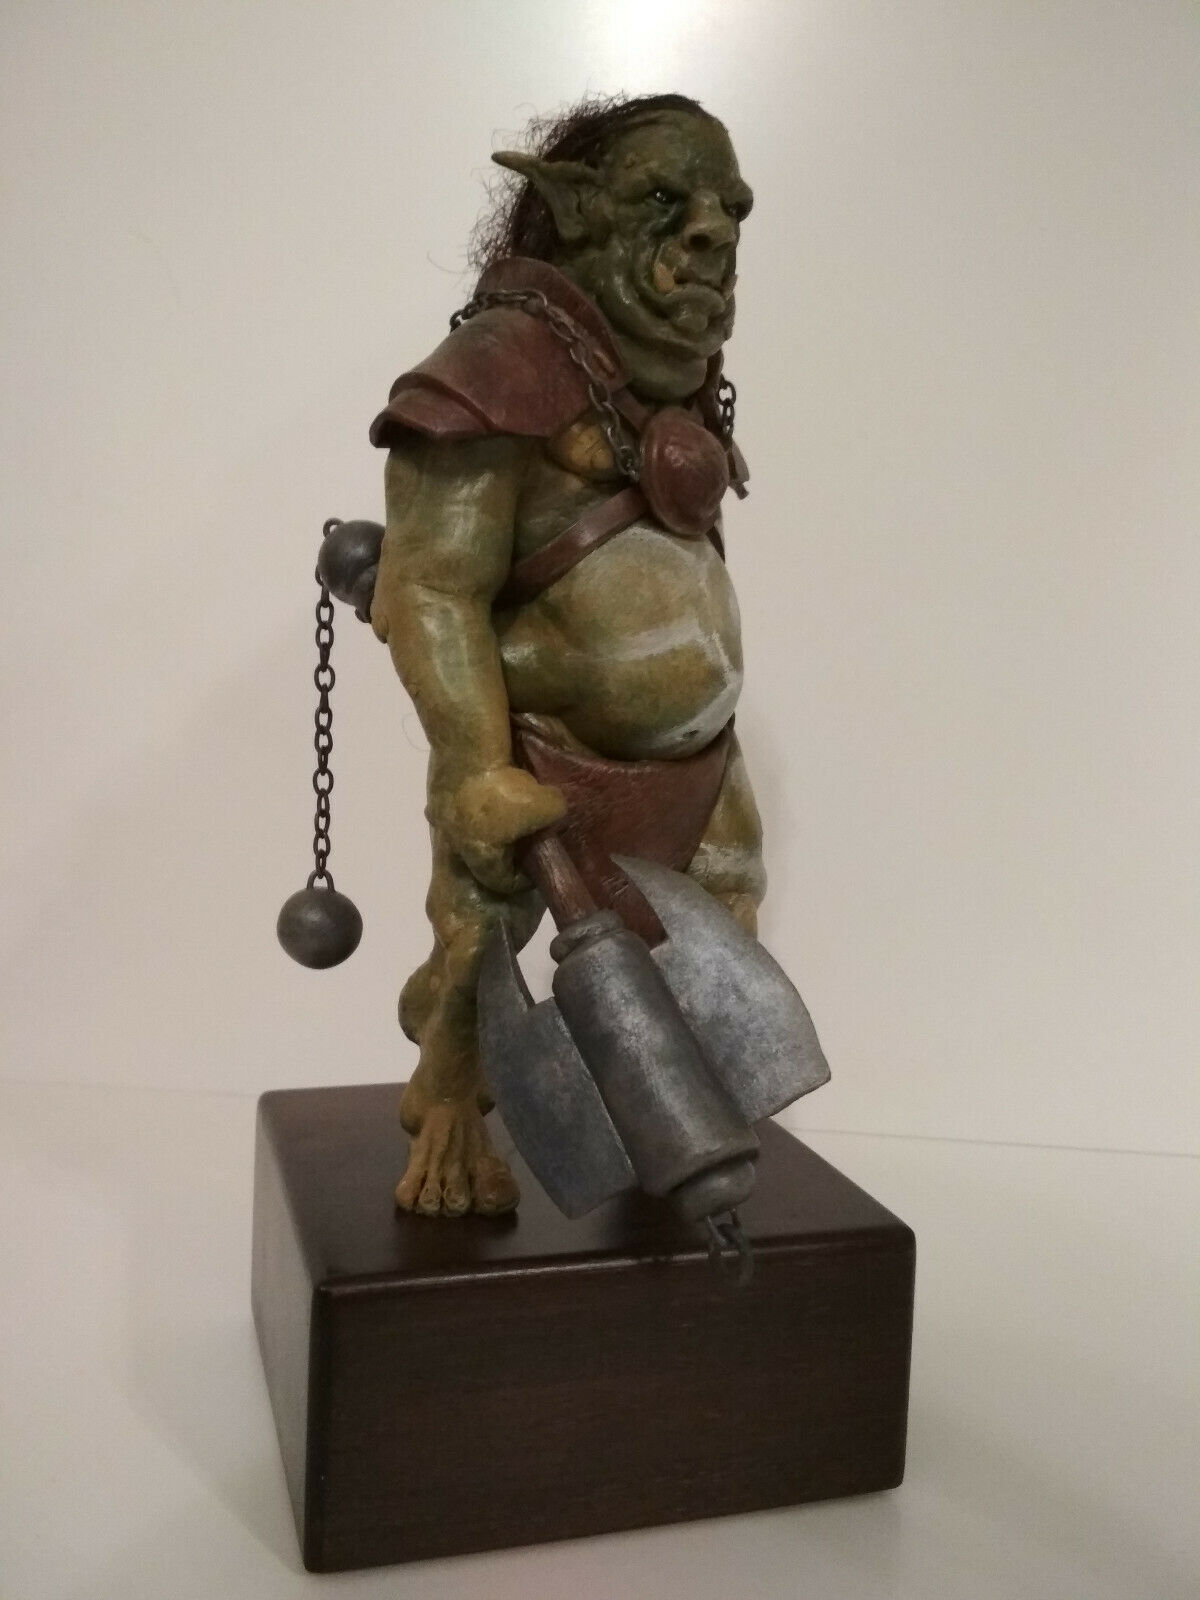 Orc with double axe - OOAK polymer clay sculpture sculpture sculpture 9ca749